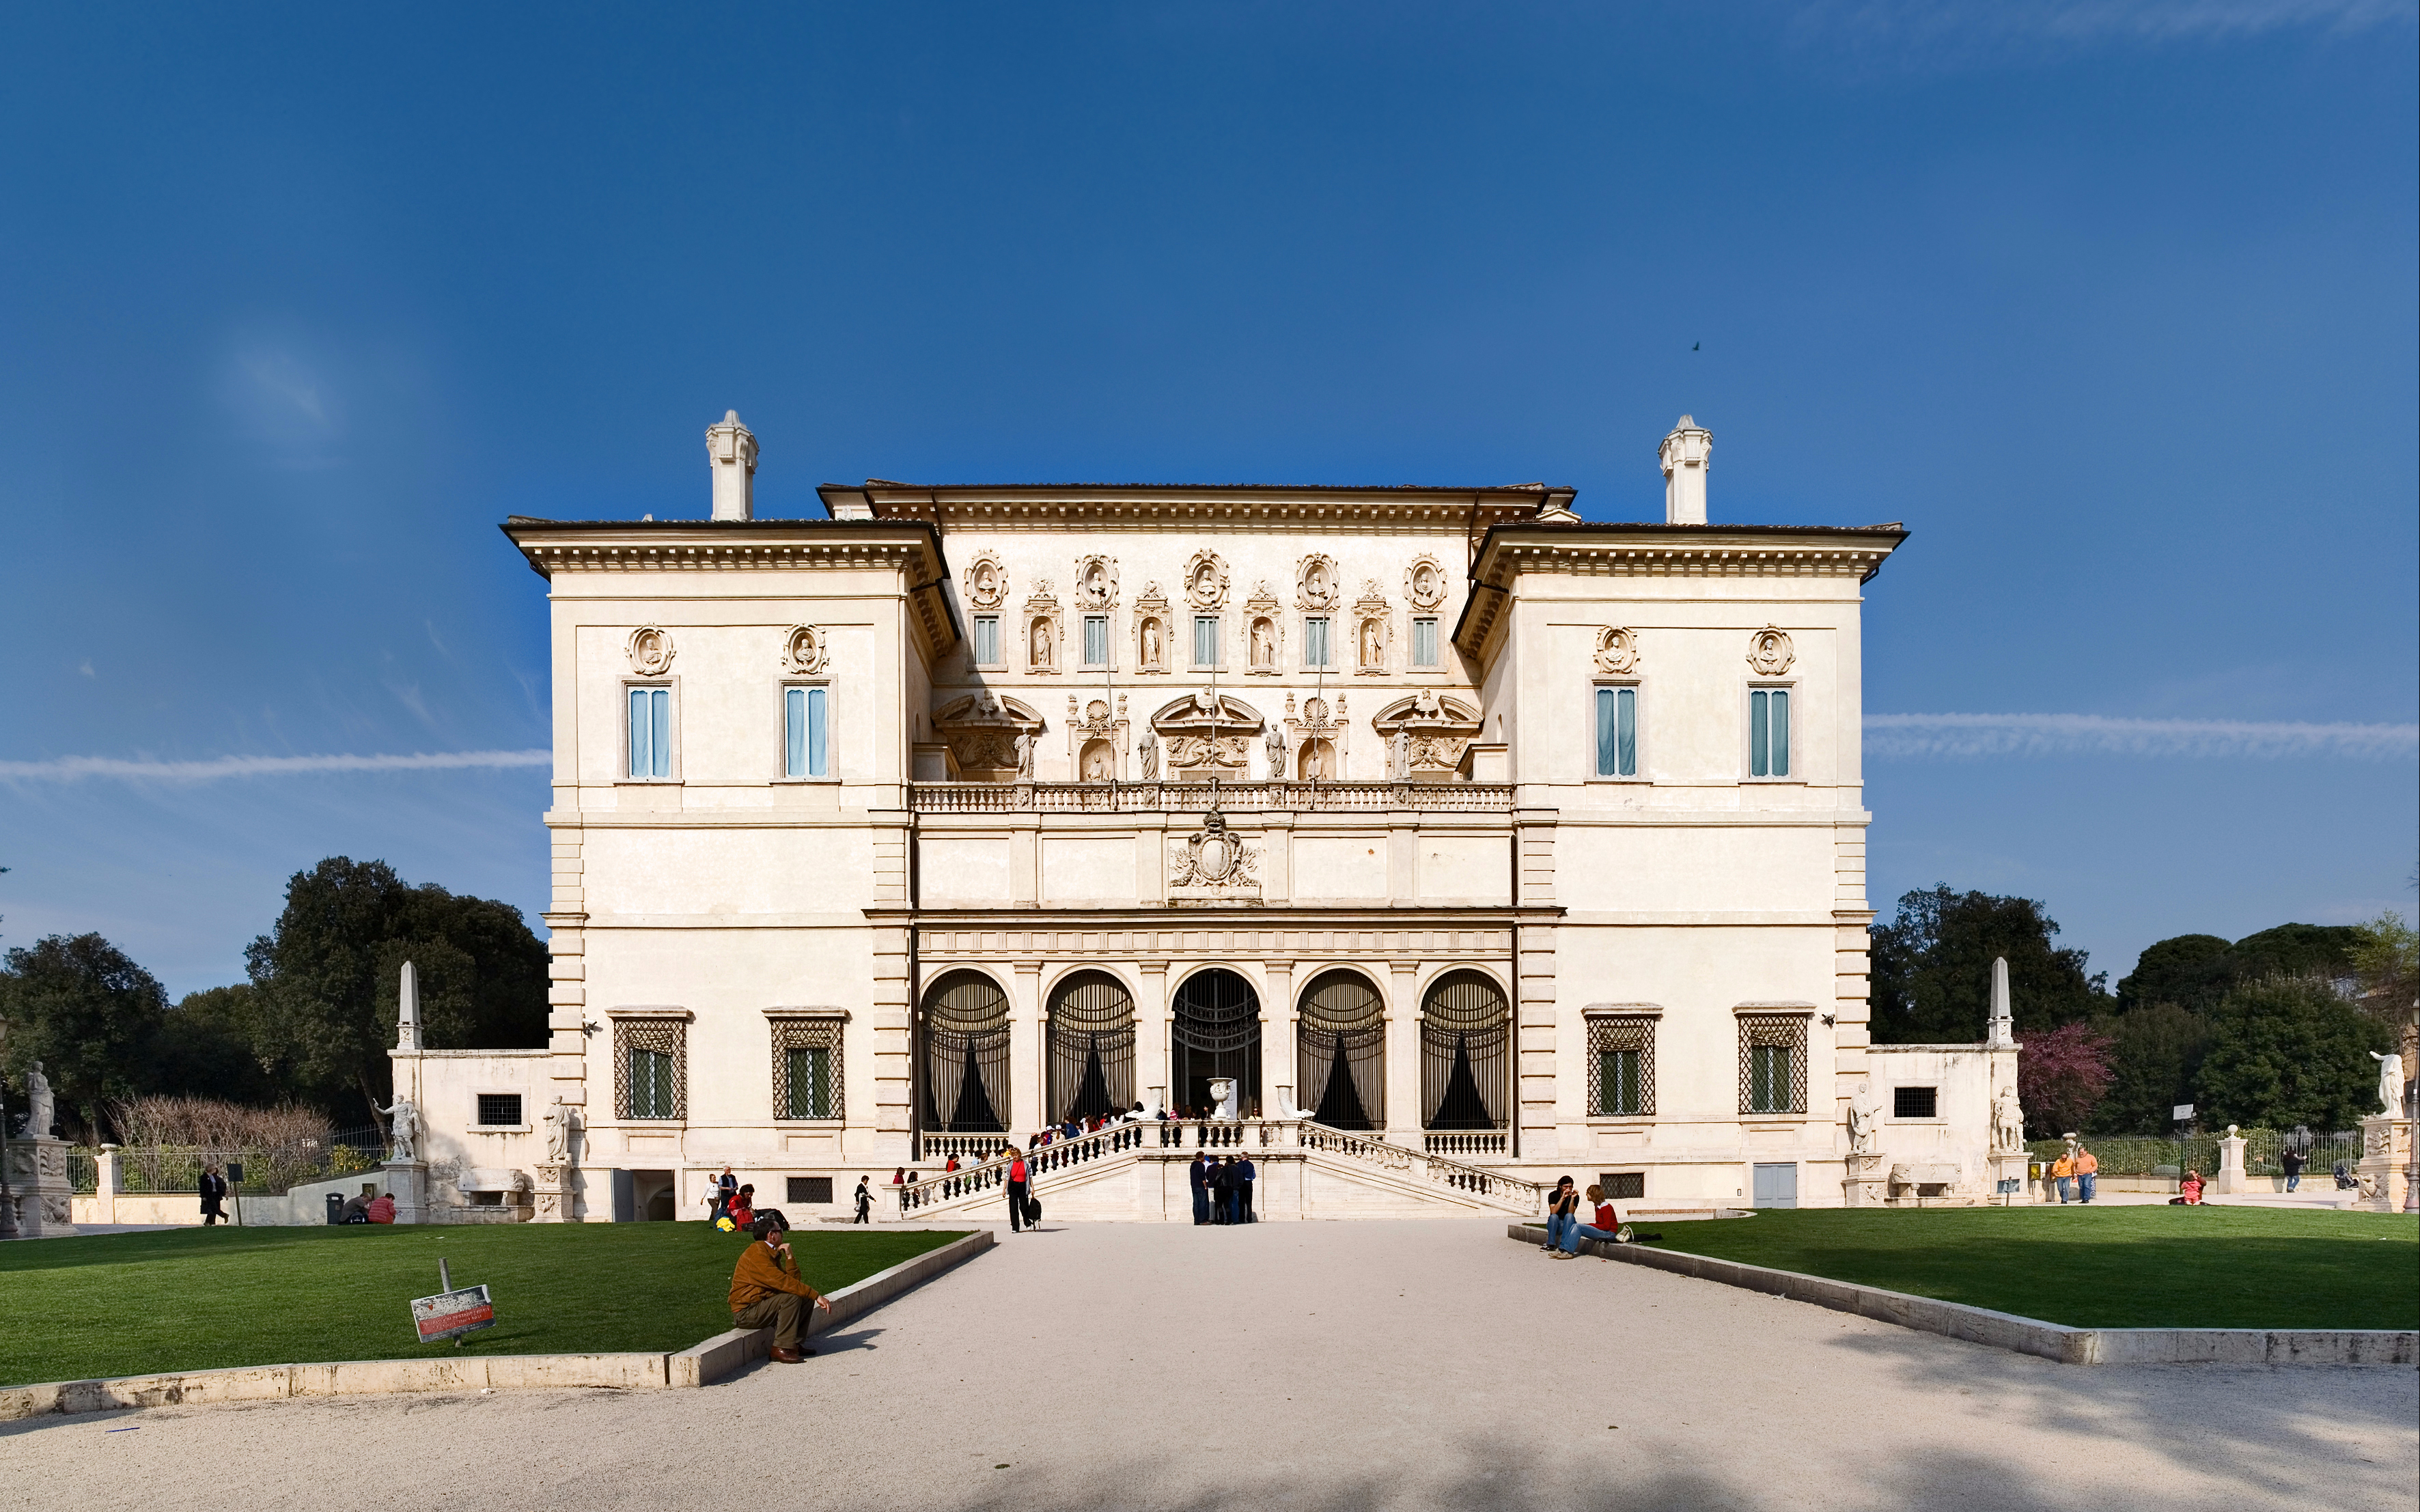 Borghese Gallery and Museum